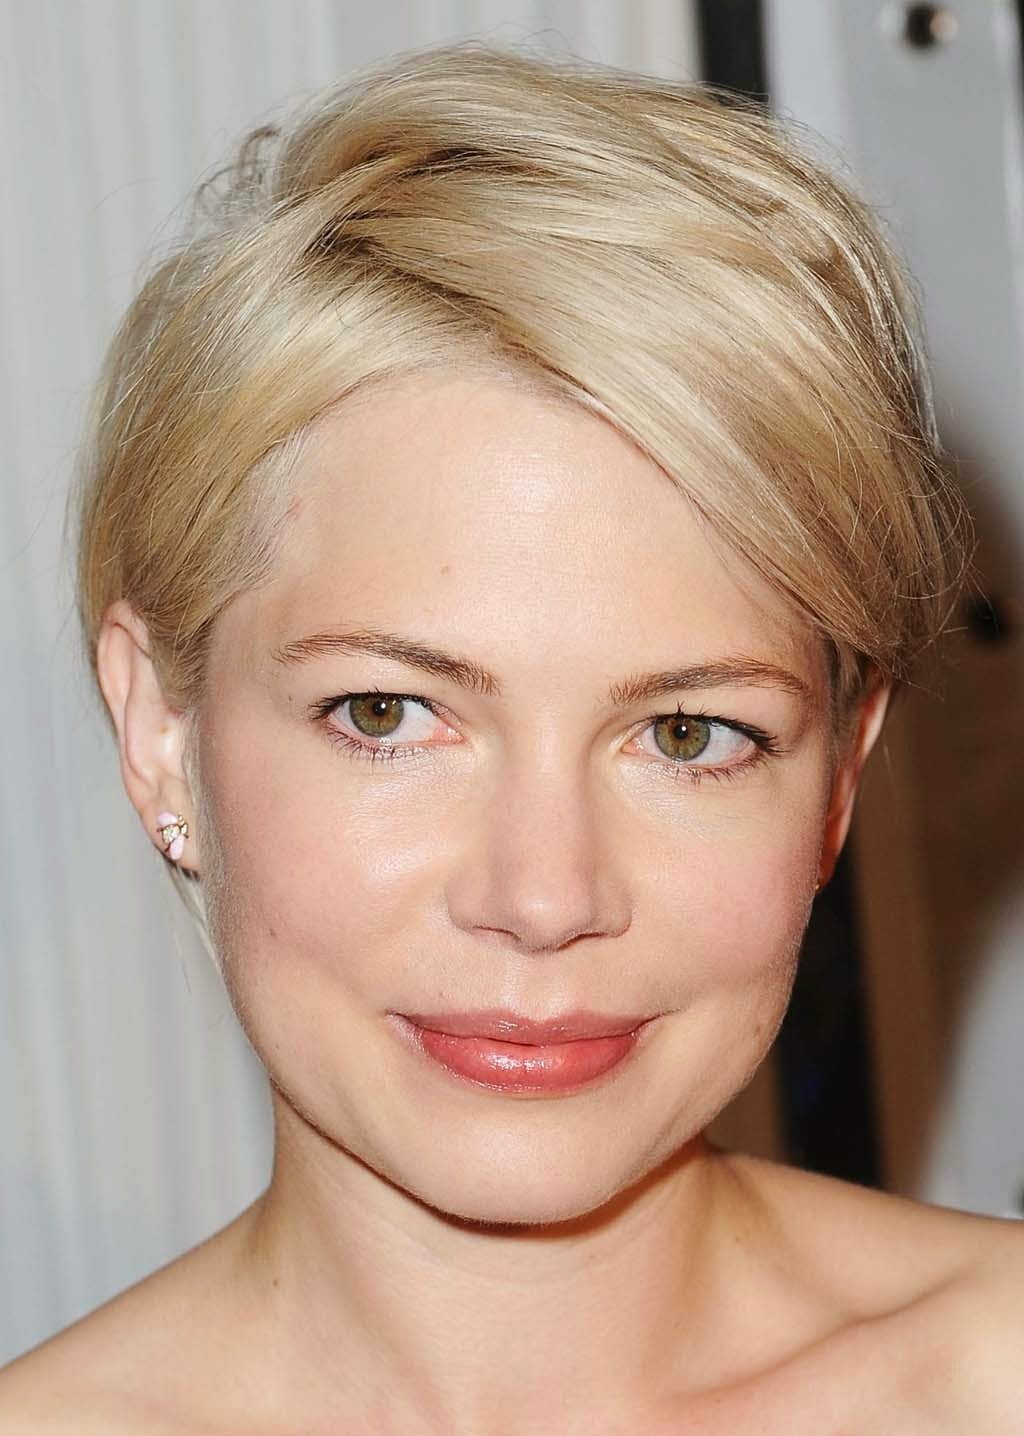 The Best Superb Hairstyle Short Cool Hairstyles For Round Faces Pictures